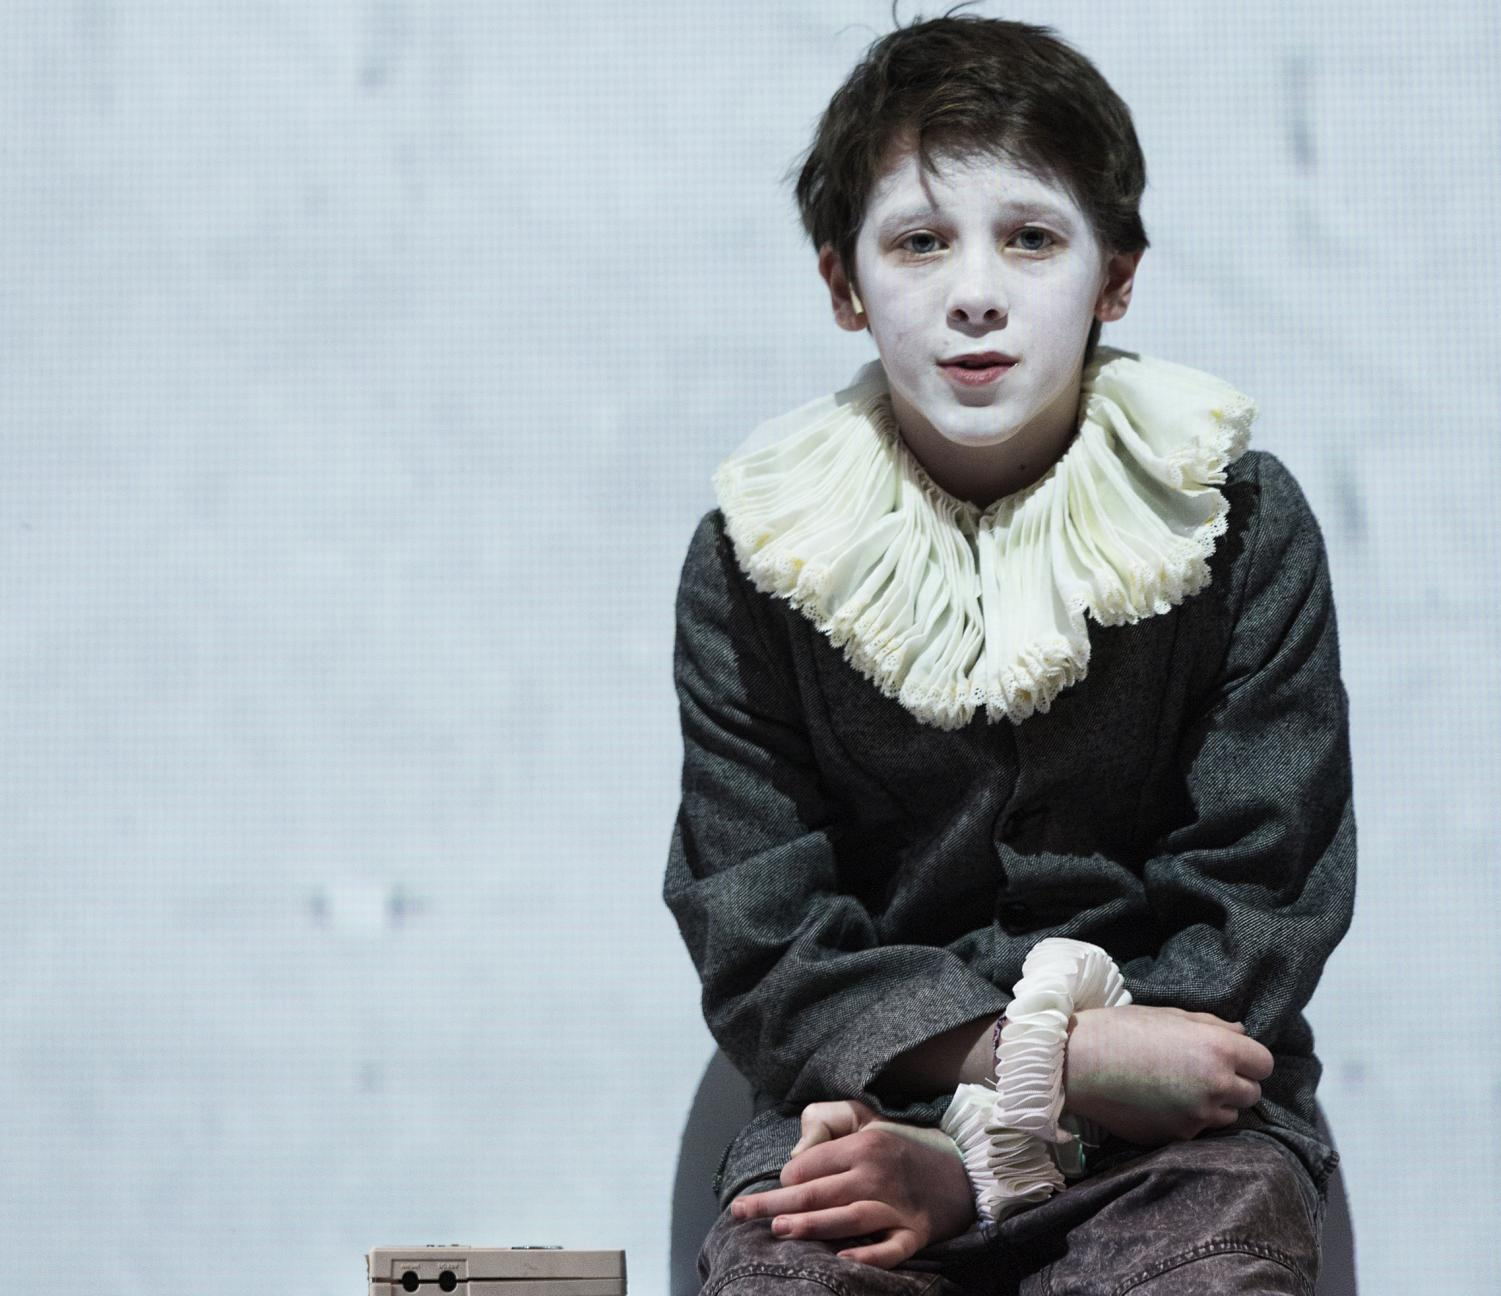 Ollie West as Hamnet, the 11-year-old son of William Shakespeare.